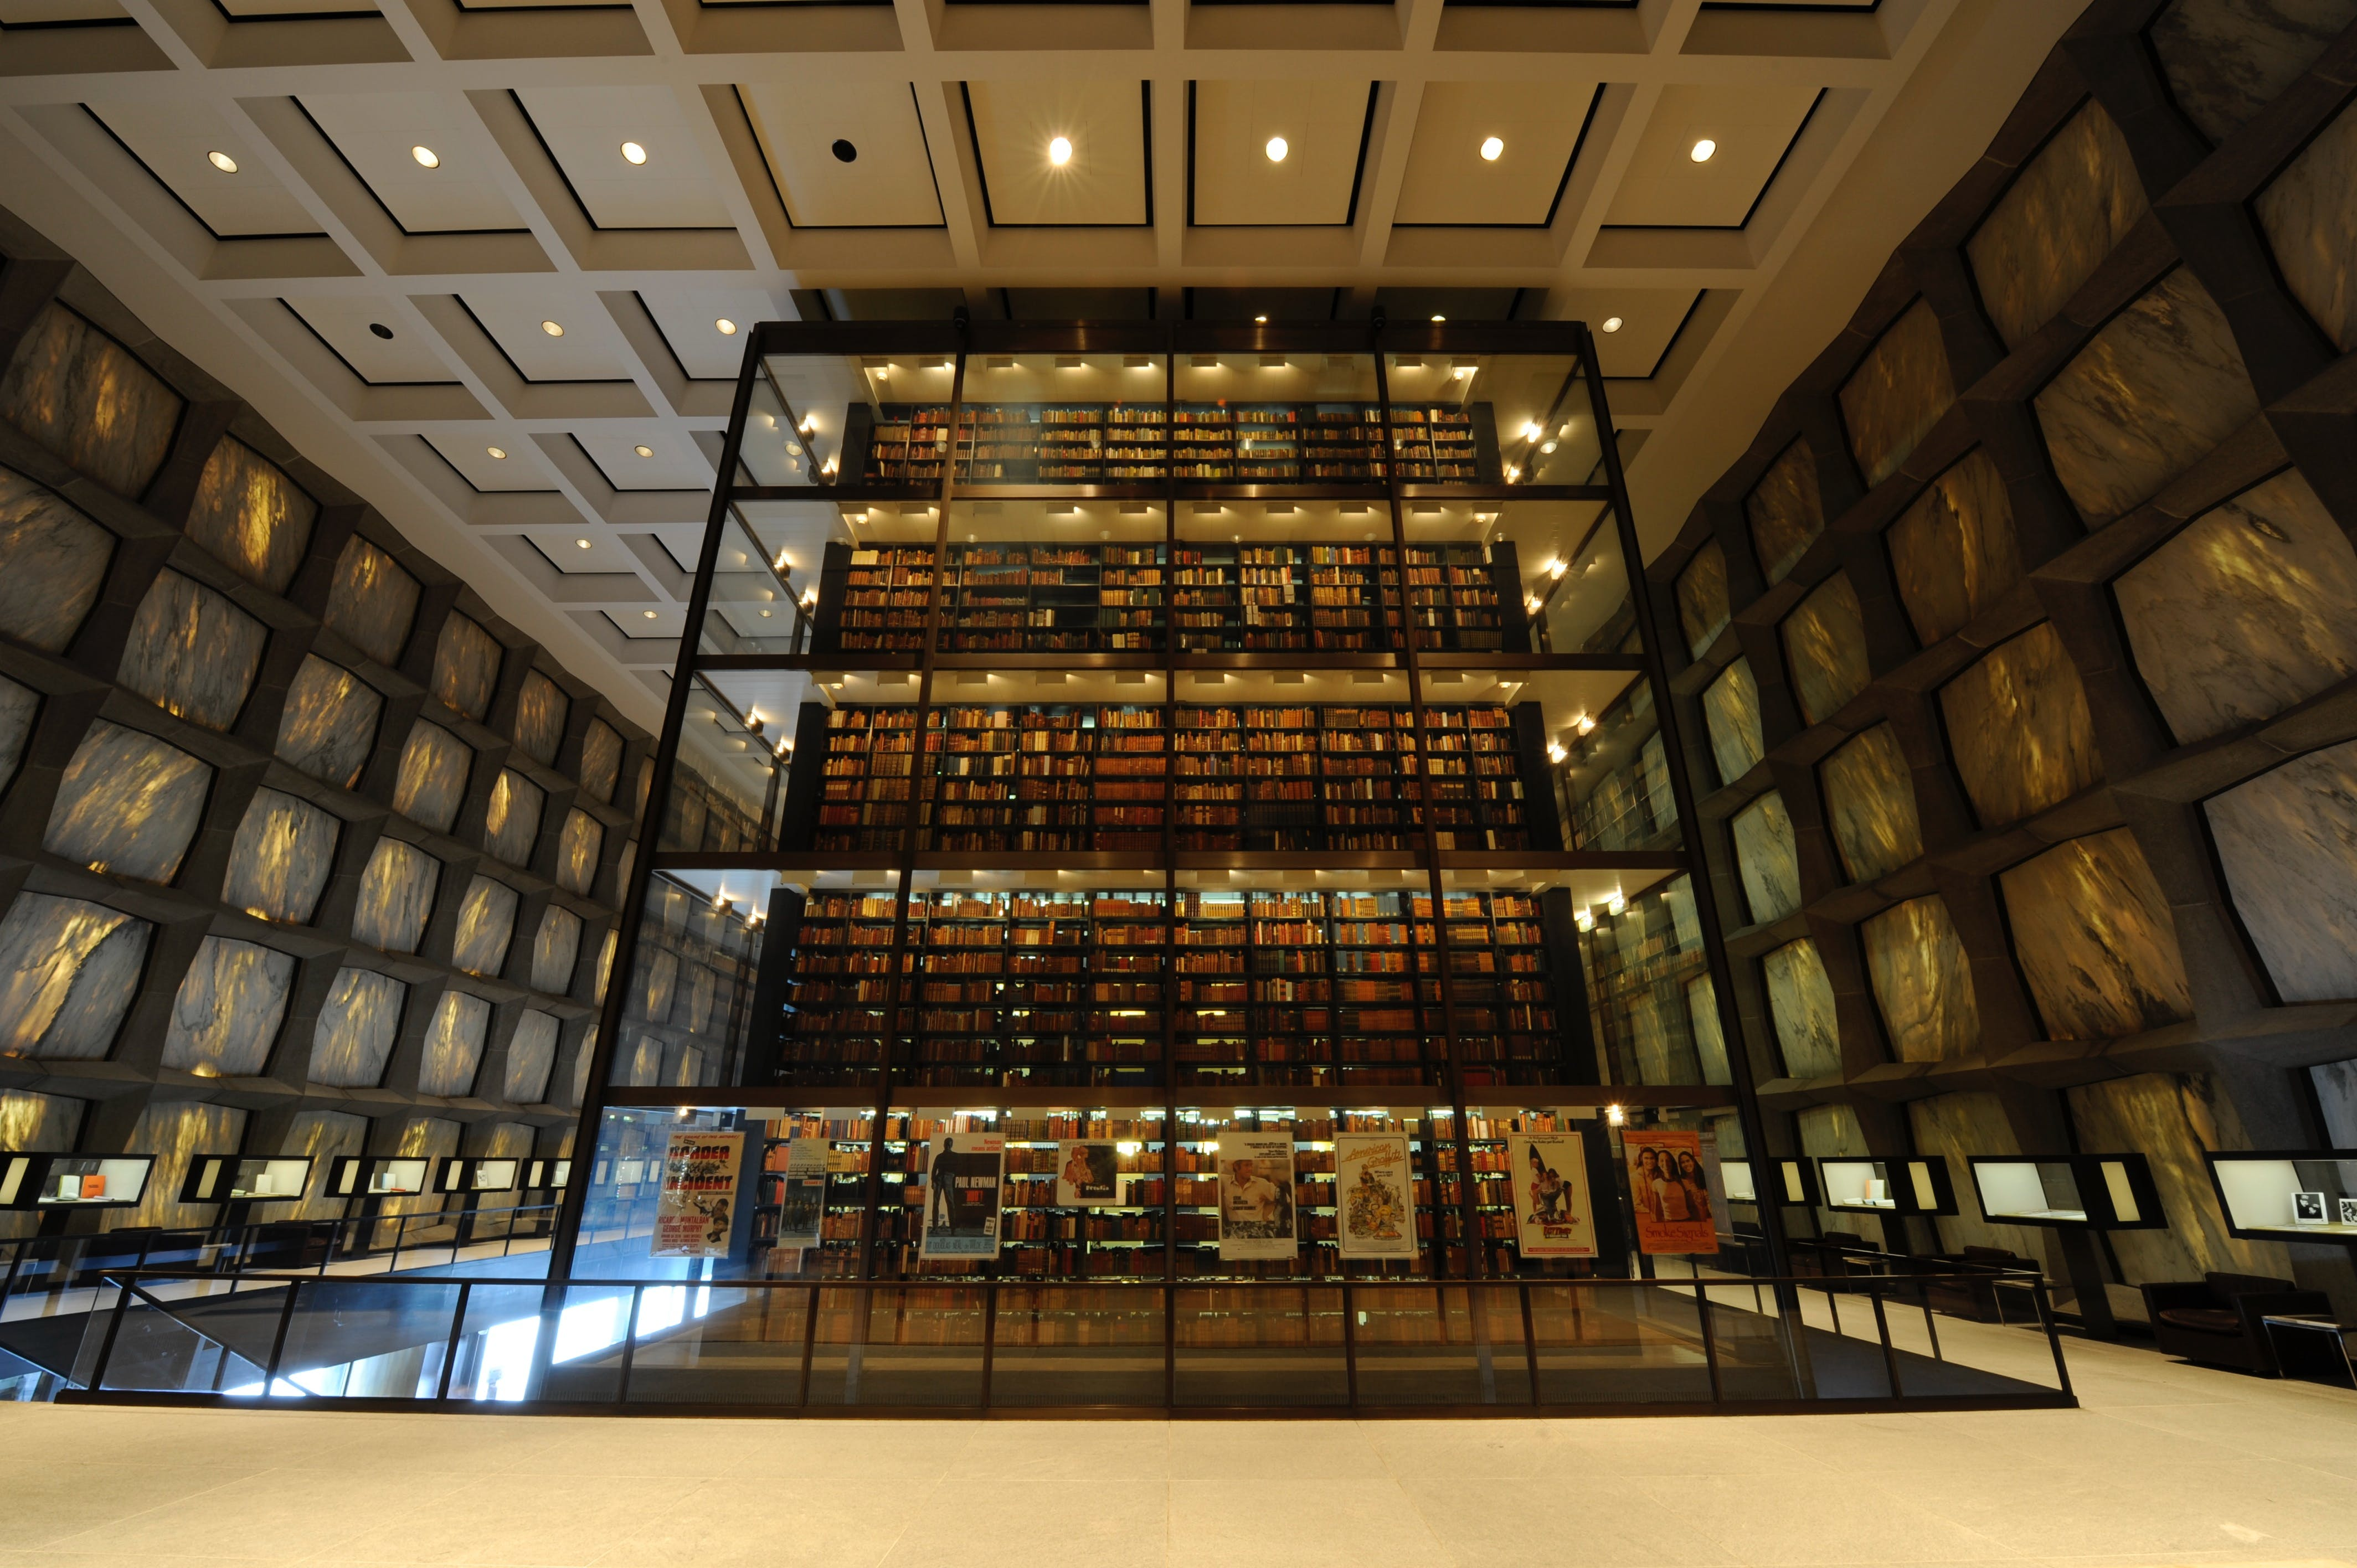 Beinecke Rare Book and Manuscript Library at Yale University